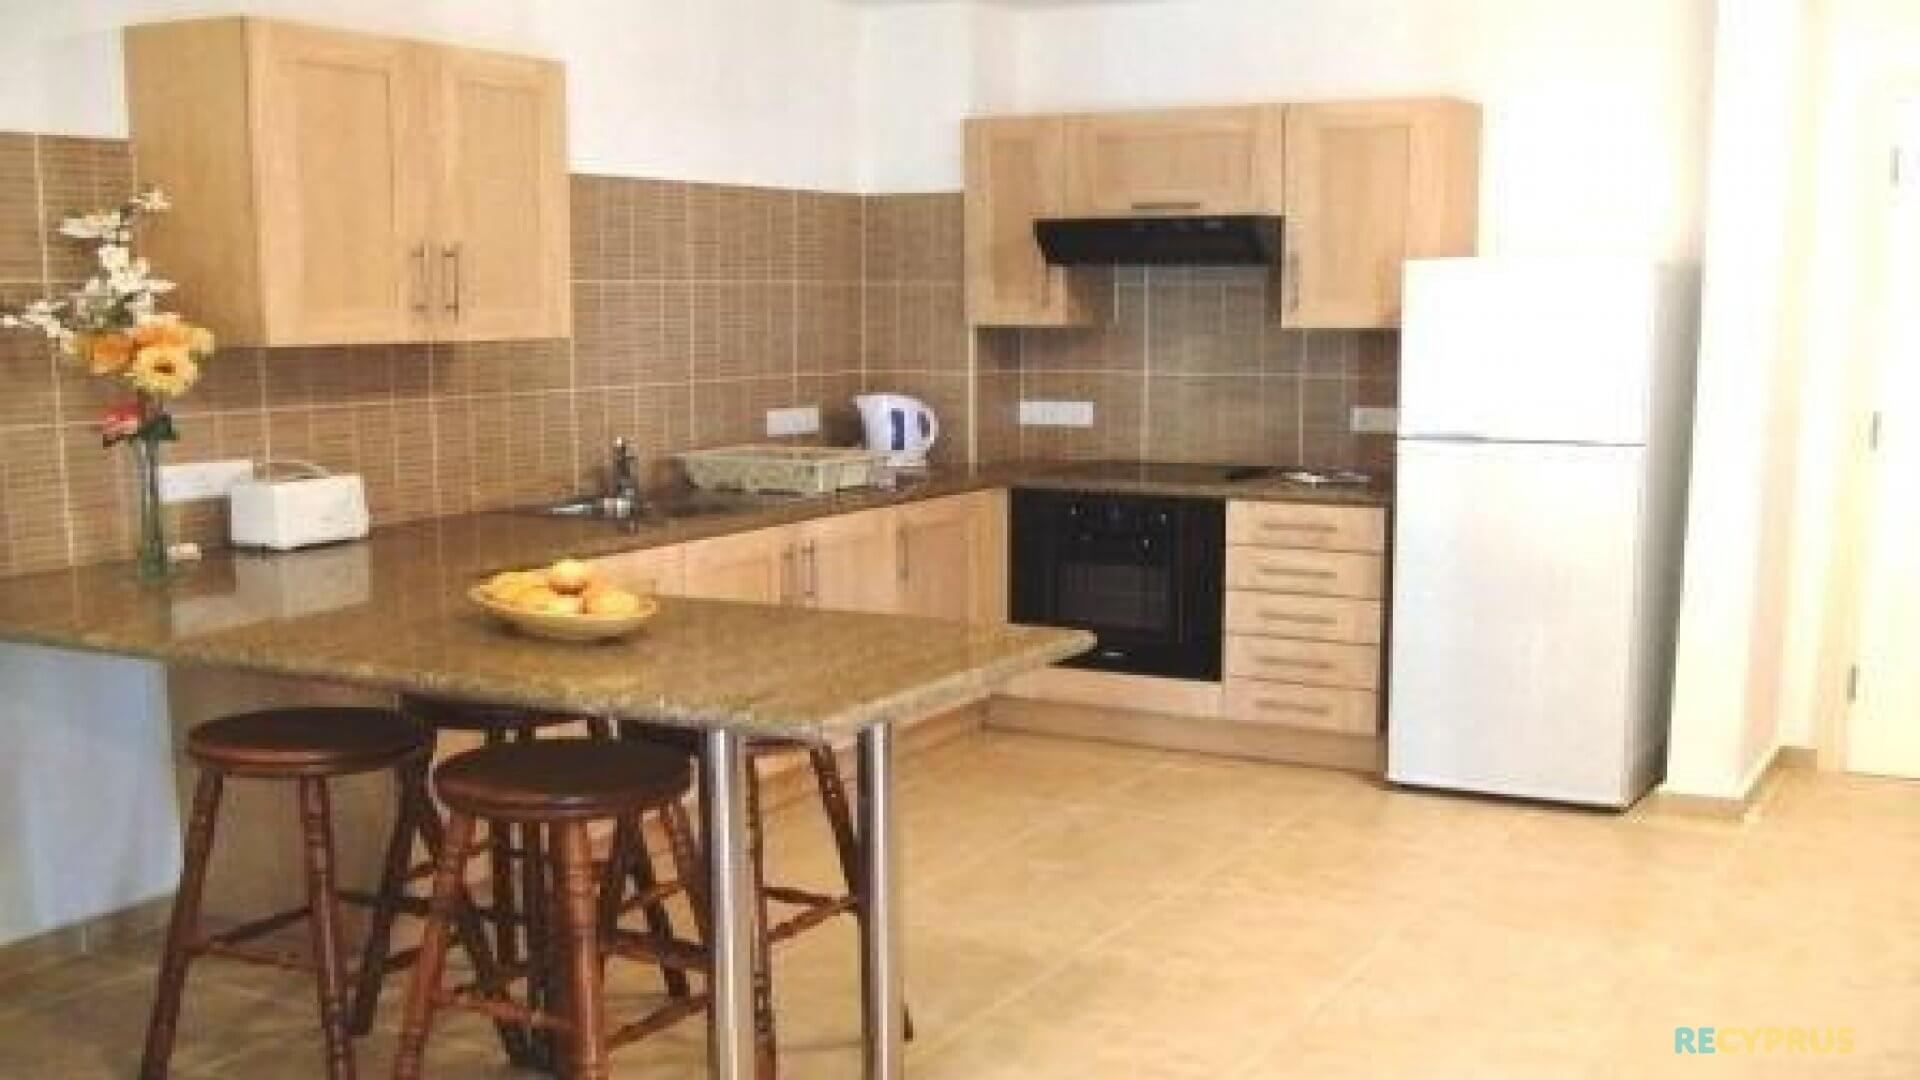 Apartment for sale Kapparis Famagusta Cyprus 1 3458